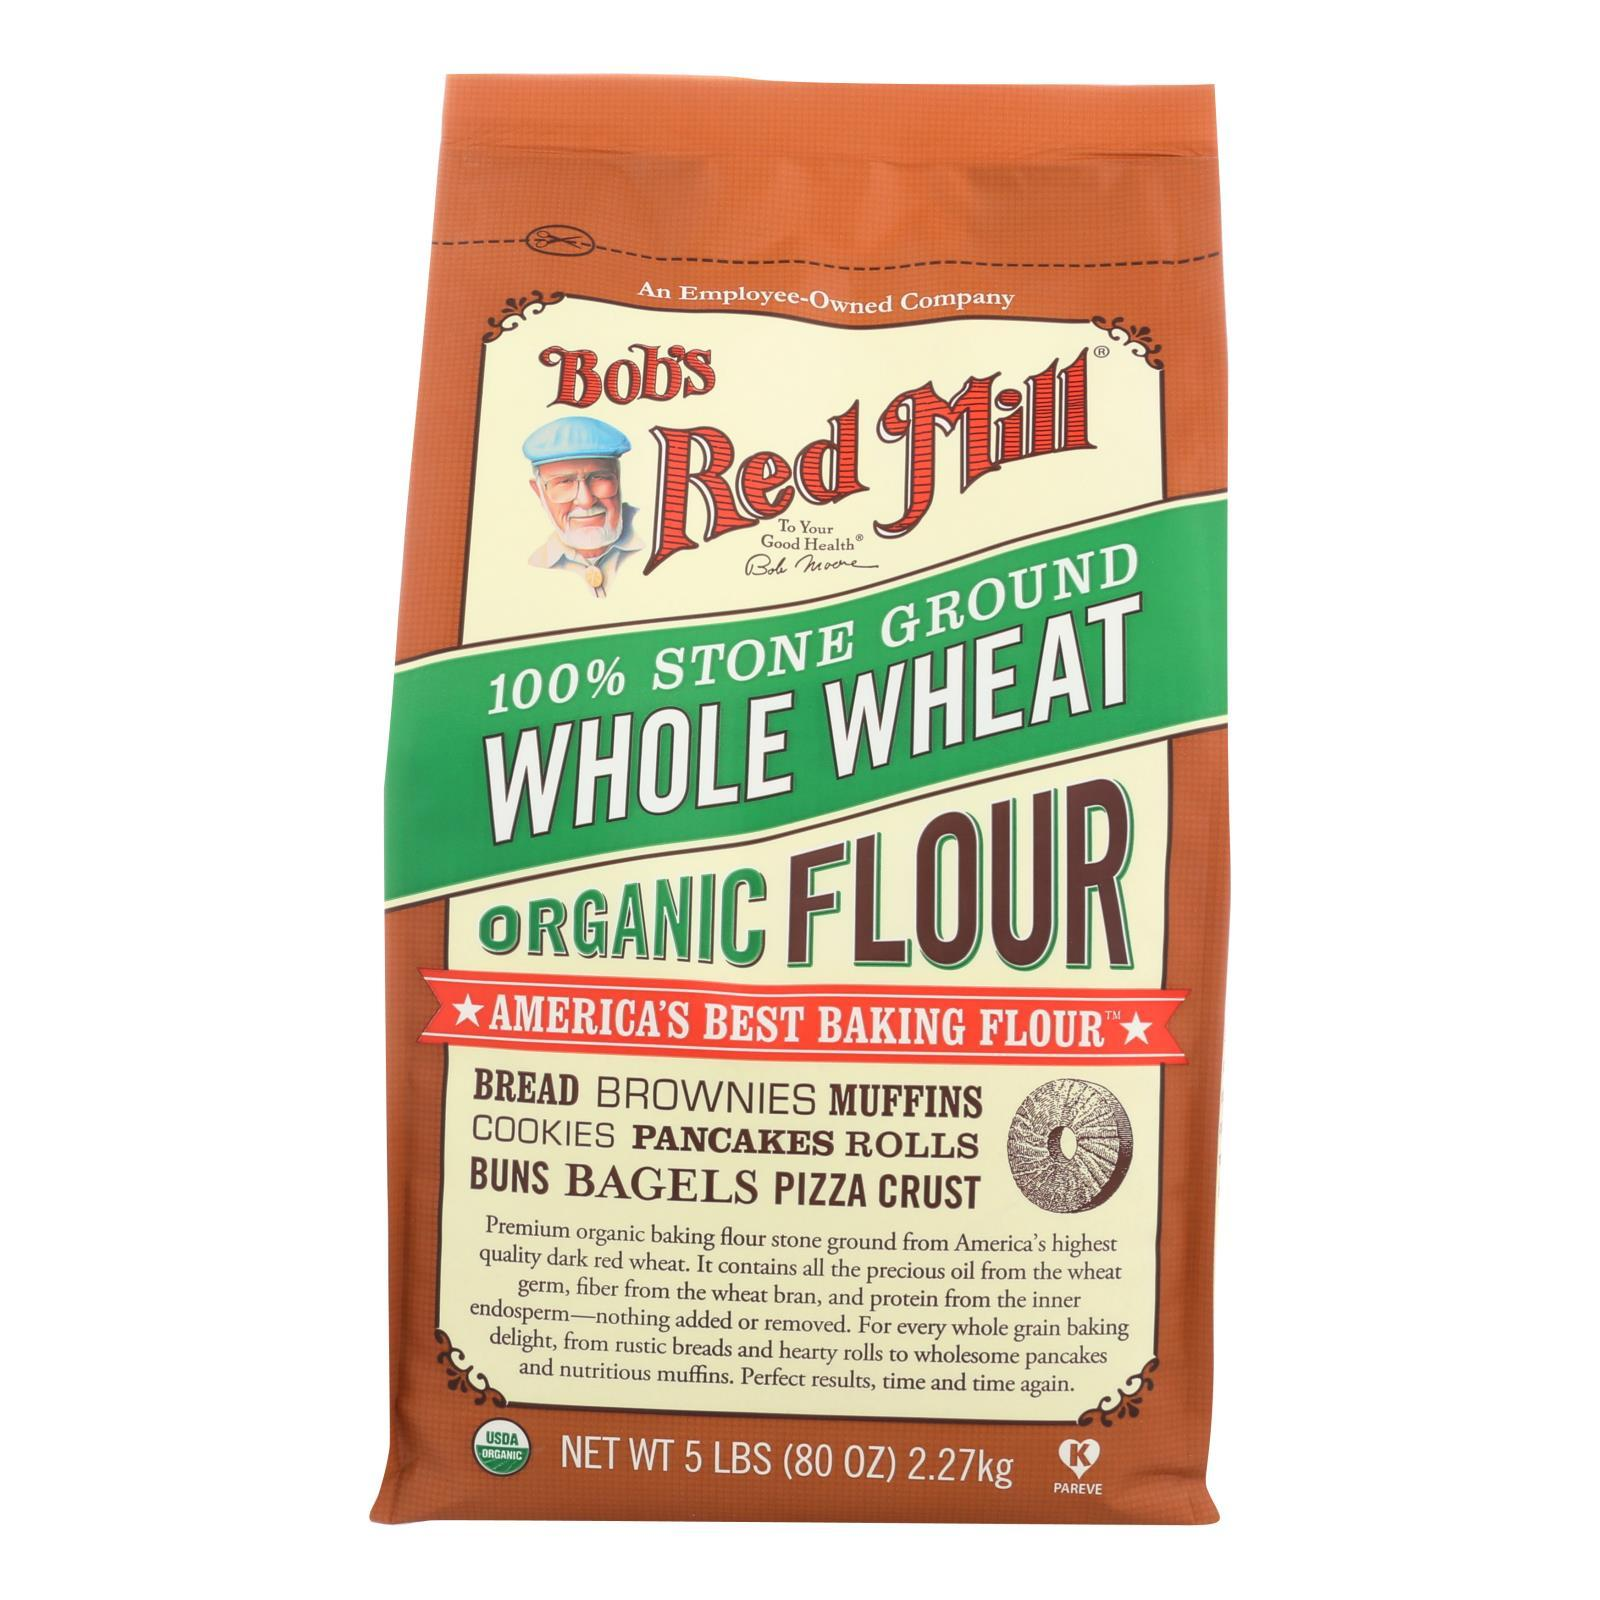 Bob's Red Mill - Organic Whole Wheat Flour - 5 Lb - Case Of 4 - BeeGreen